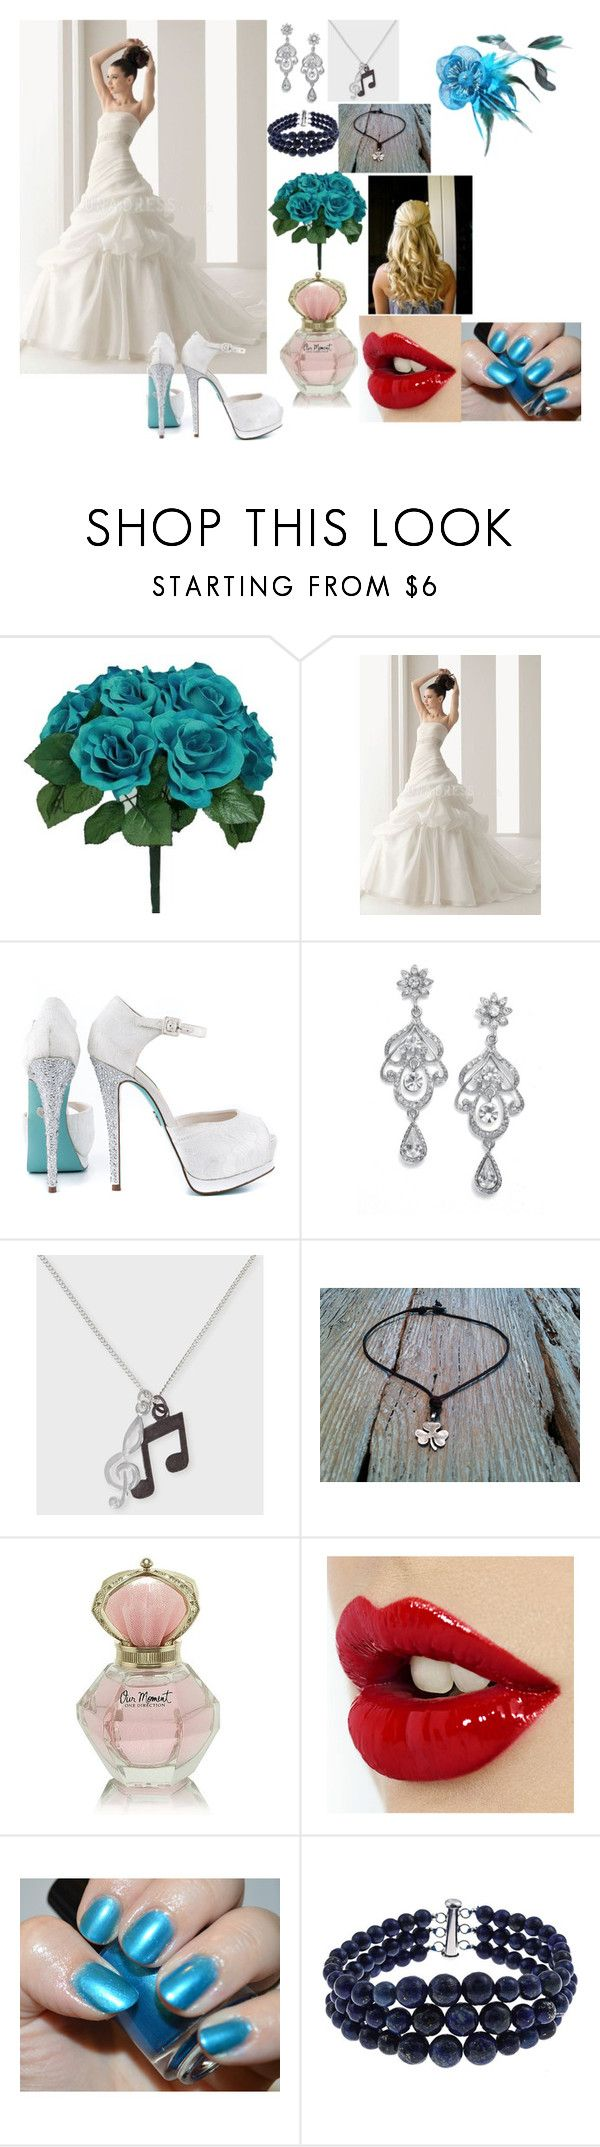 """Chapter 31: Wedding Day! Aaliyah"" by kiara-fleming ❤ liked on Polyvore featuring Betsey Johnson, Paul Smith and Pearlz Ocean"